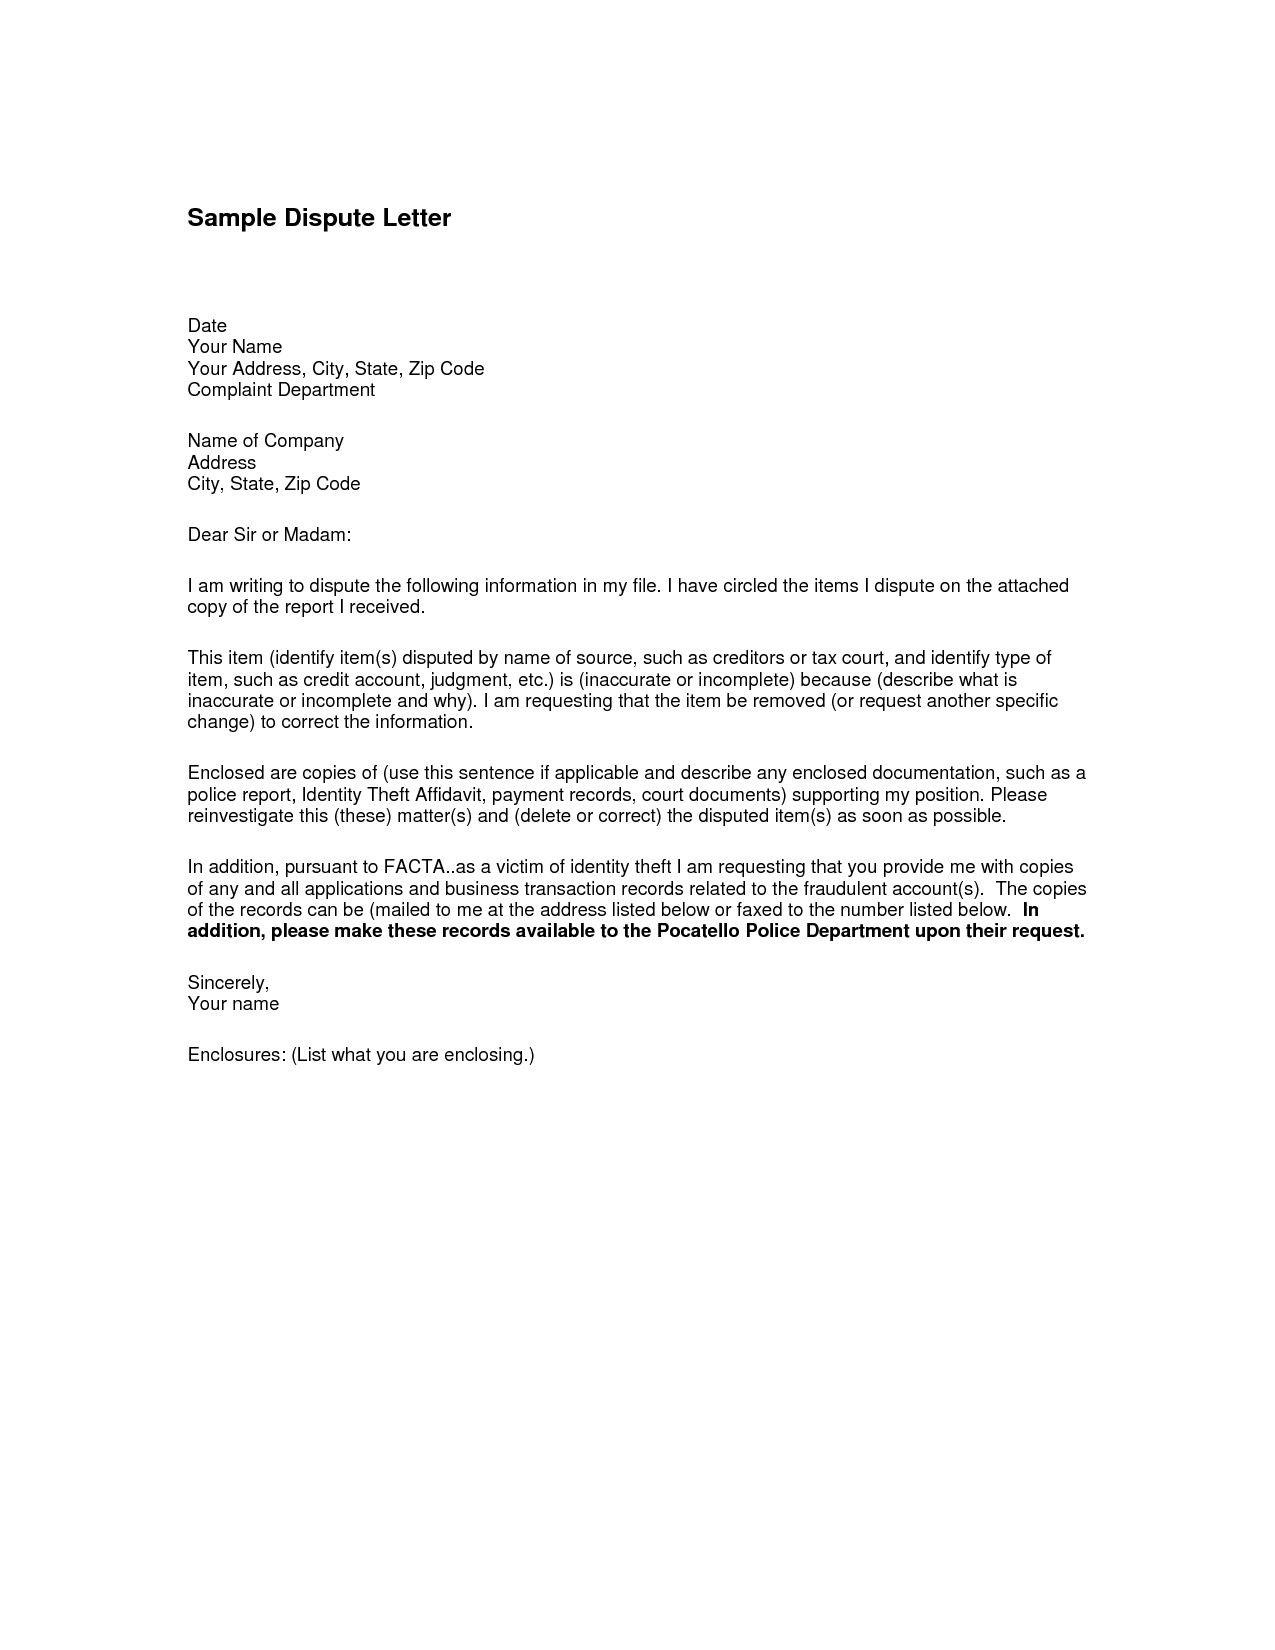 Dispute Letter Template - Invoice Dispute Letter Awesome How to Write An Excellent Resume Rfp